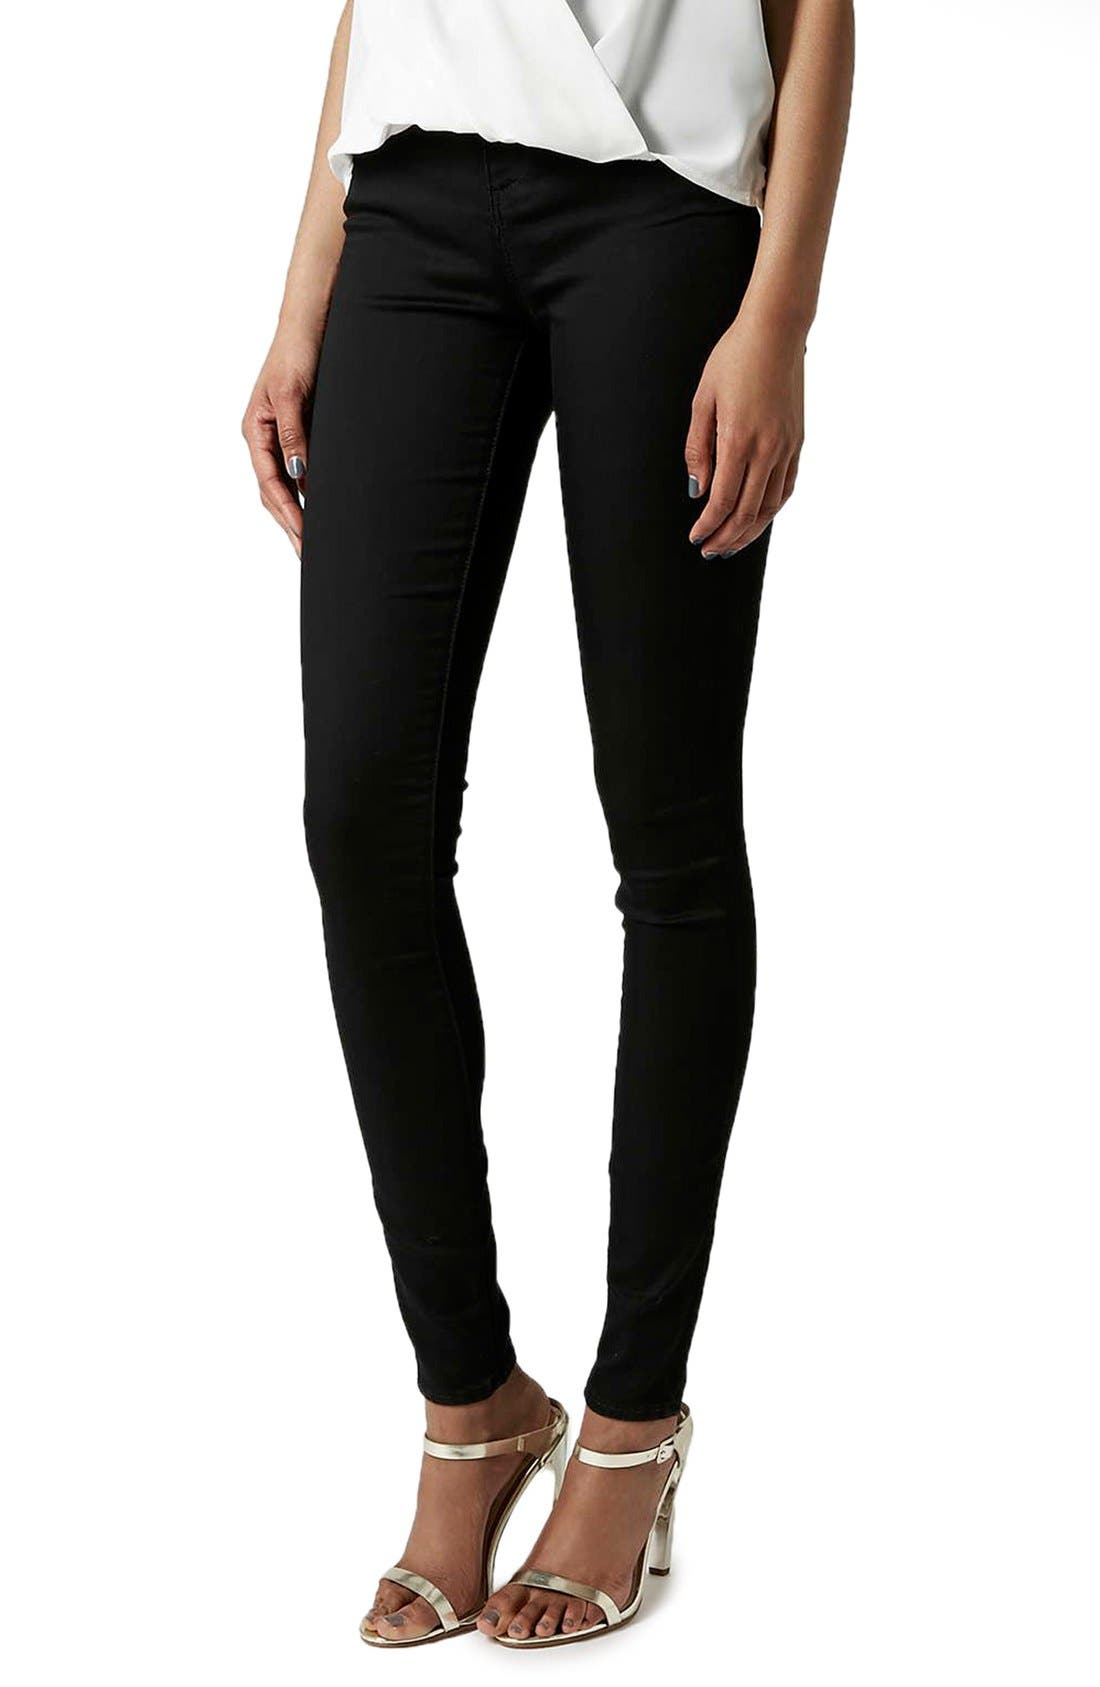 Alternate Image 1 Selected - Topshop 'Leigh' High Rise Skinny Jeans (Tall)